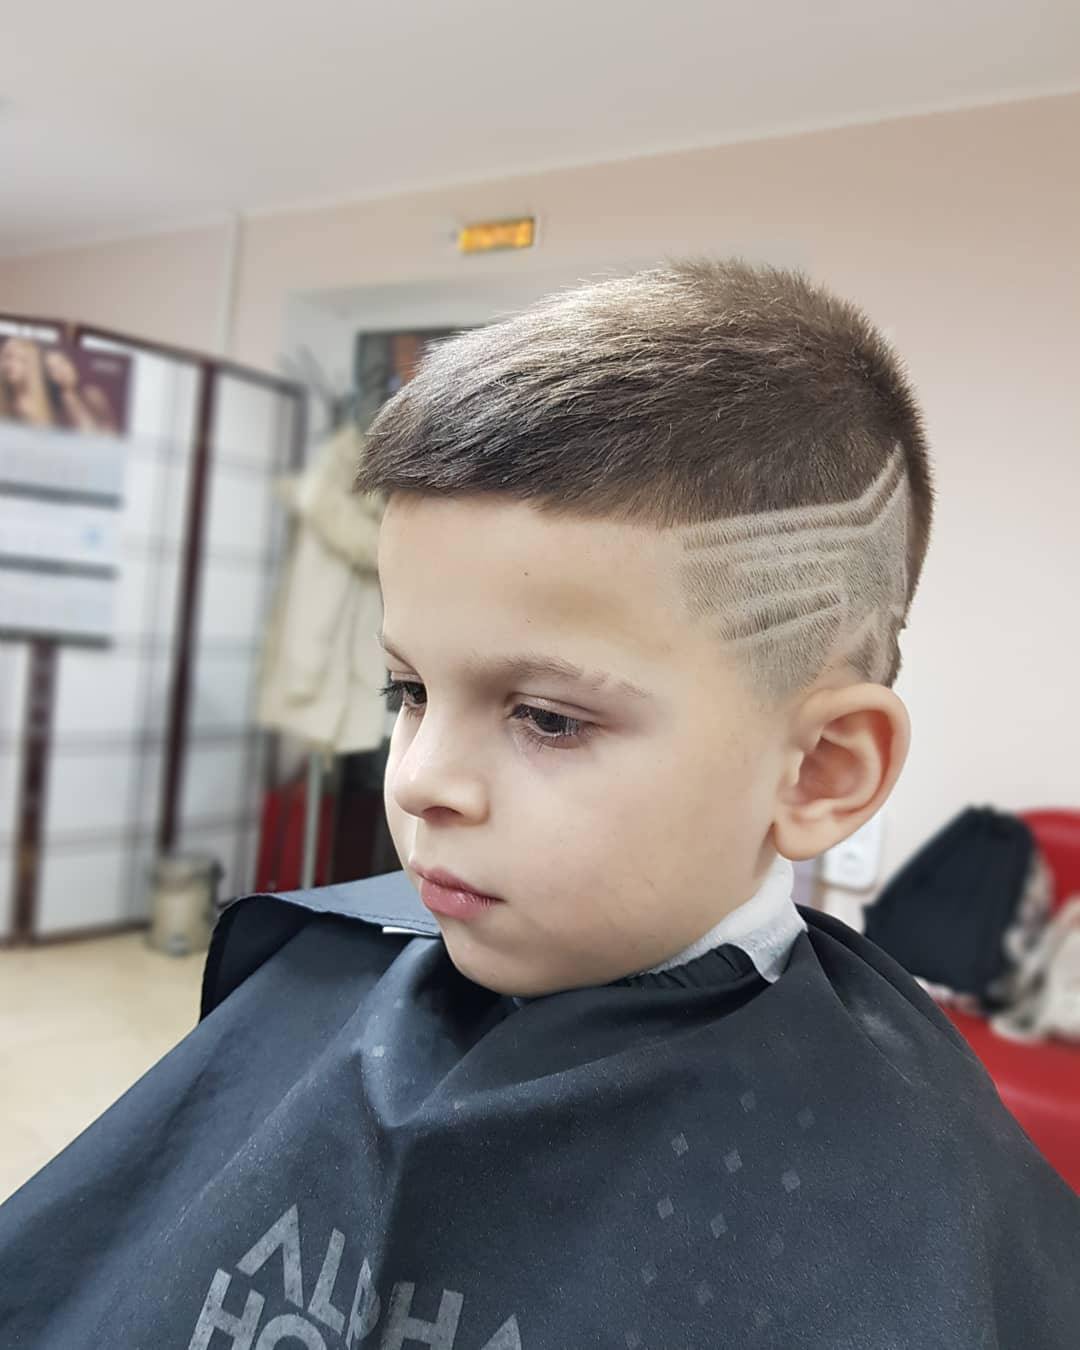 Best ideas about Boys Haircuts 2019 . Save or Pin Cool haircuts for boys 2019 Top trendy guy haircuts 2019 Now.